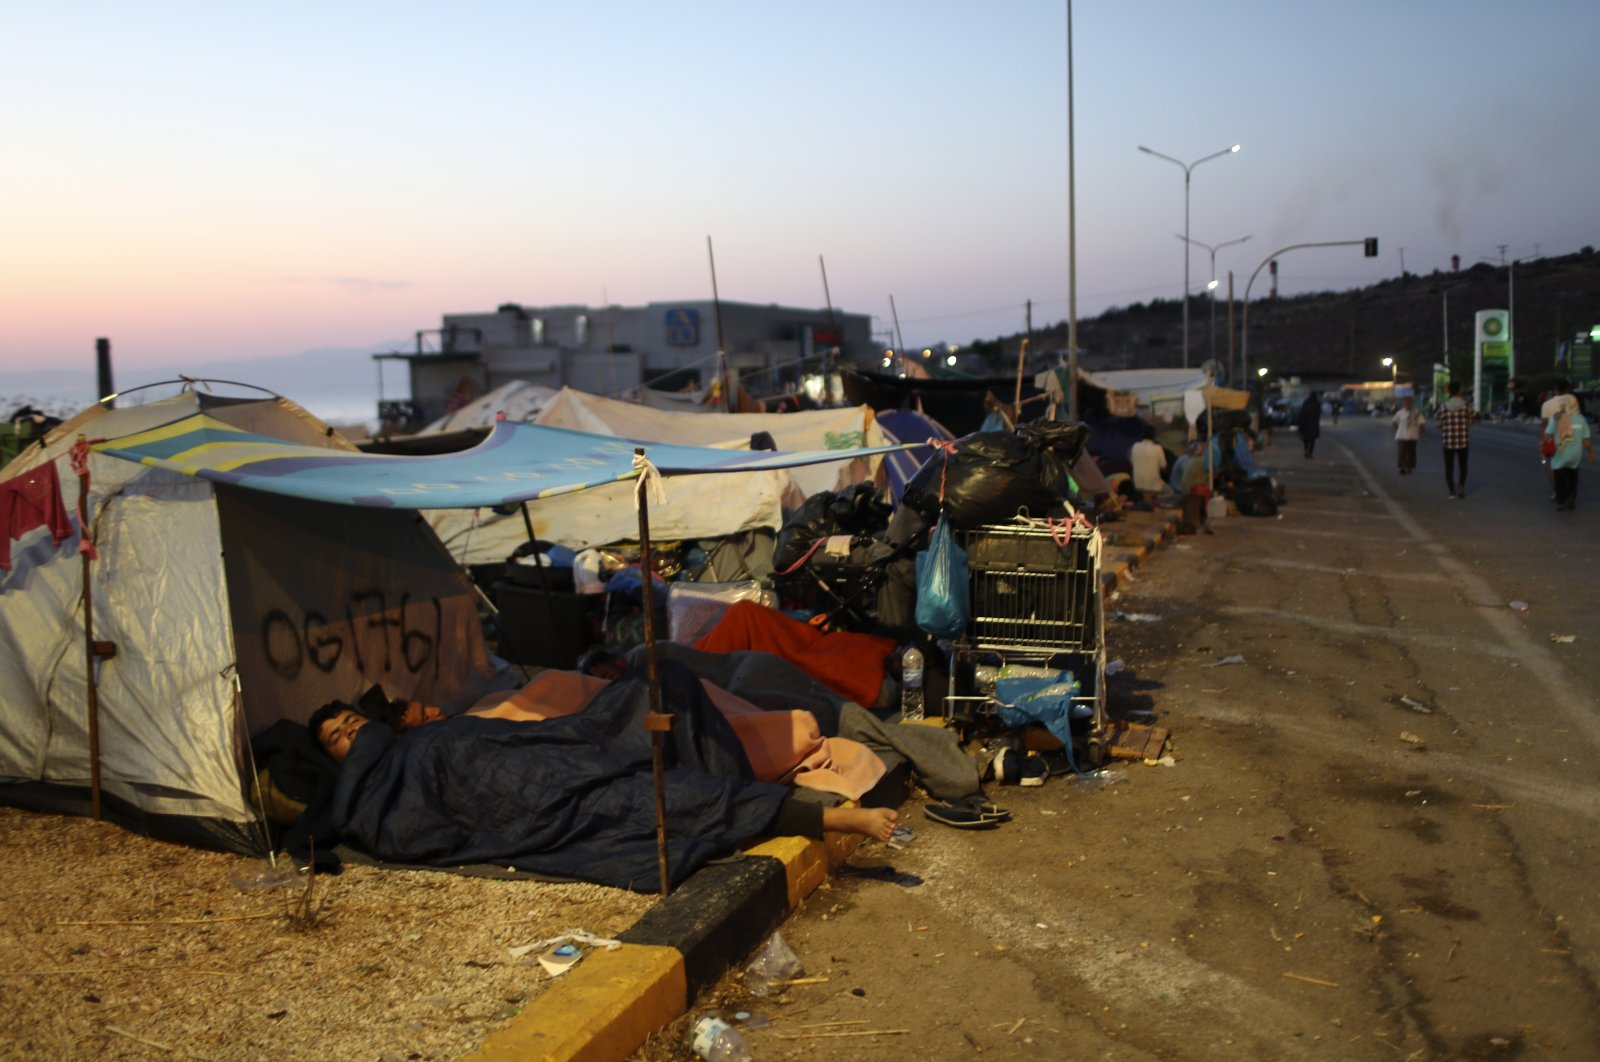 Migrants sleep outside their tents as they remain camped out on a road leading from Moria to the capital of Mytilene, Lesbos, Sept. 17, 2020. (AP Photo)